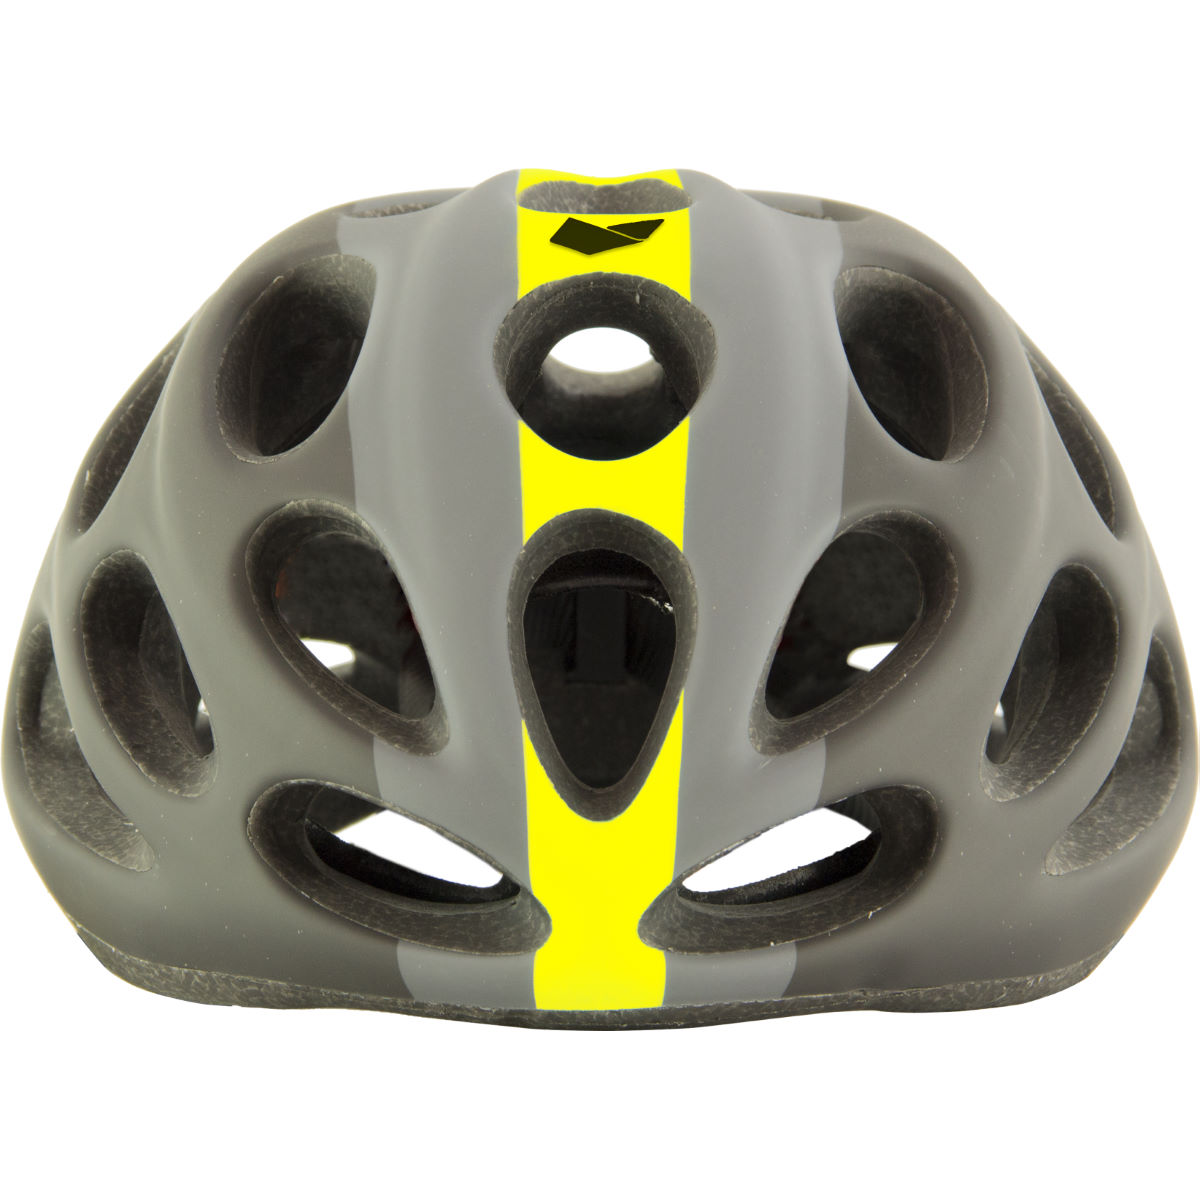 Image of Casque Catlike Chupito - L Black/Grey/Yellow   Casques